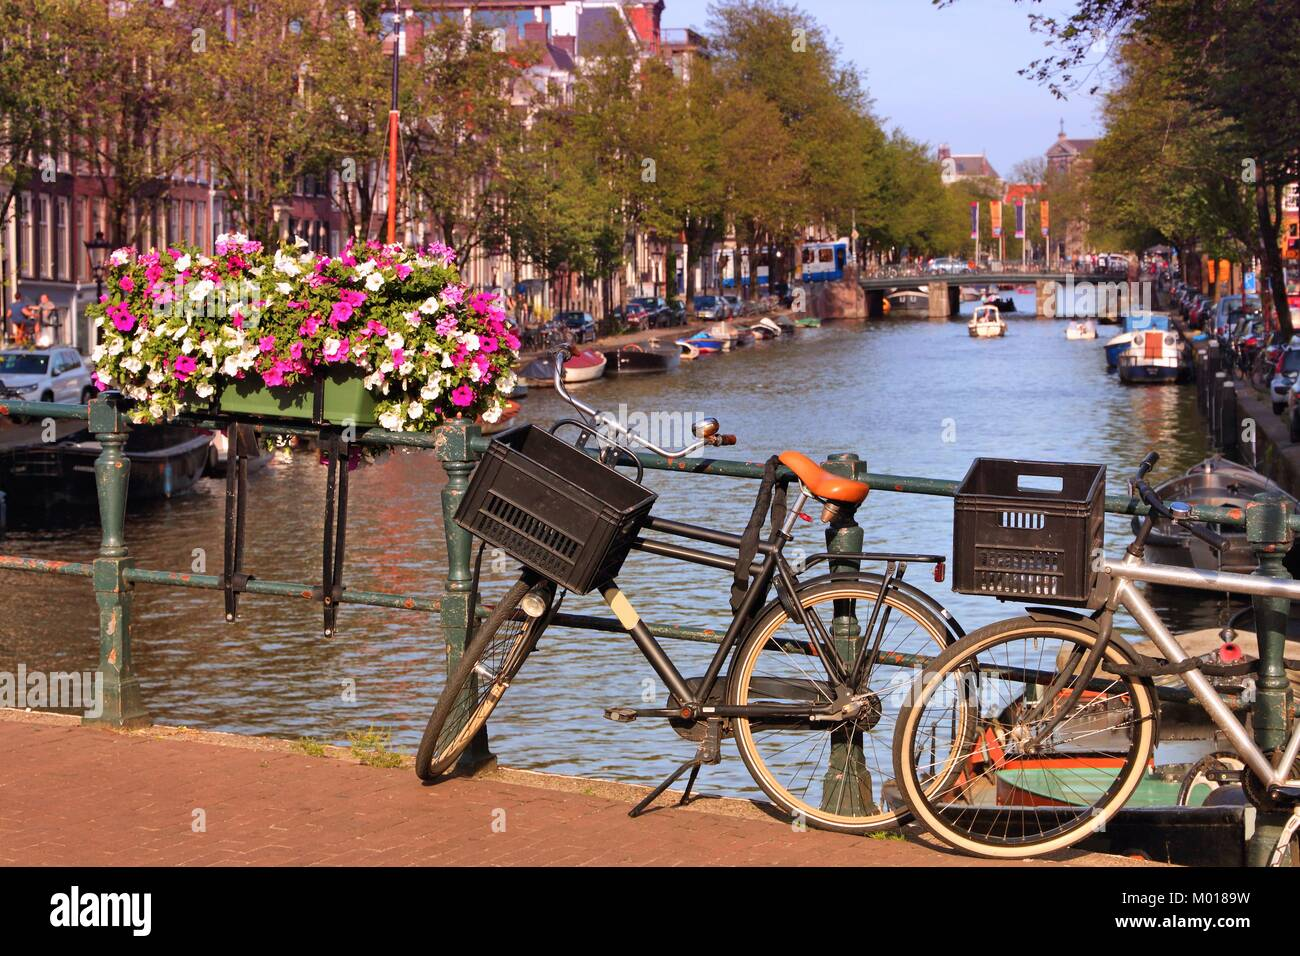 Prinsengracht Canal in Amsterdam, Netherlands. Bicycle parked on a bridge. - Stock Image